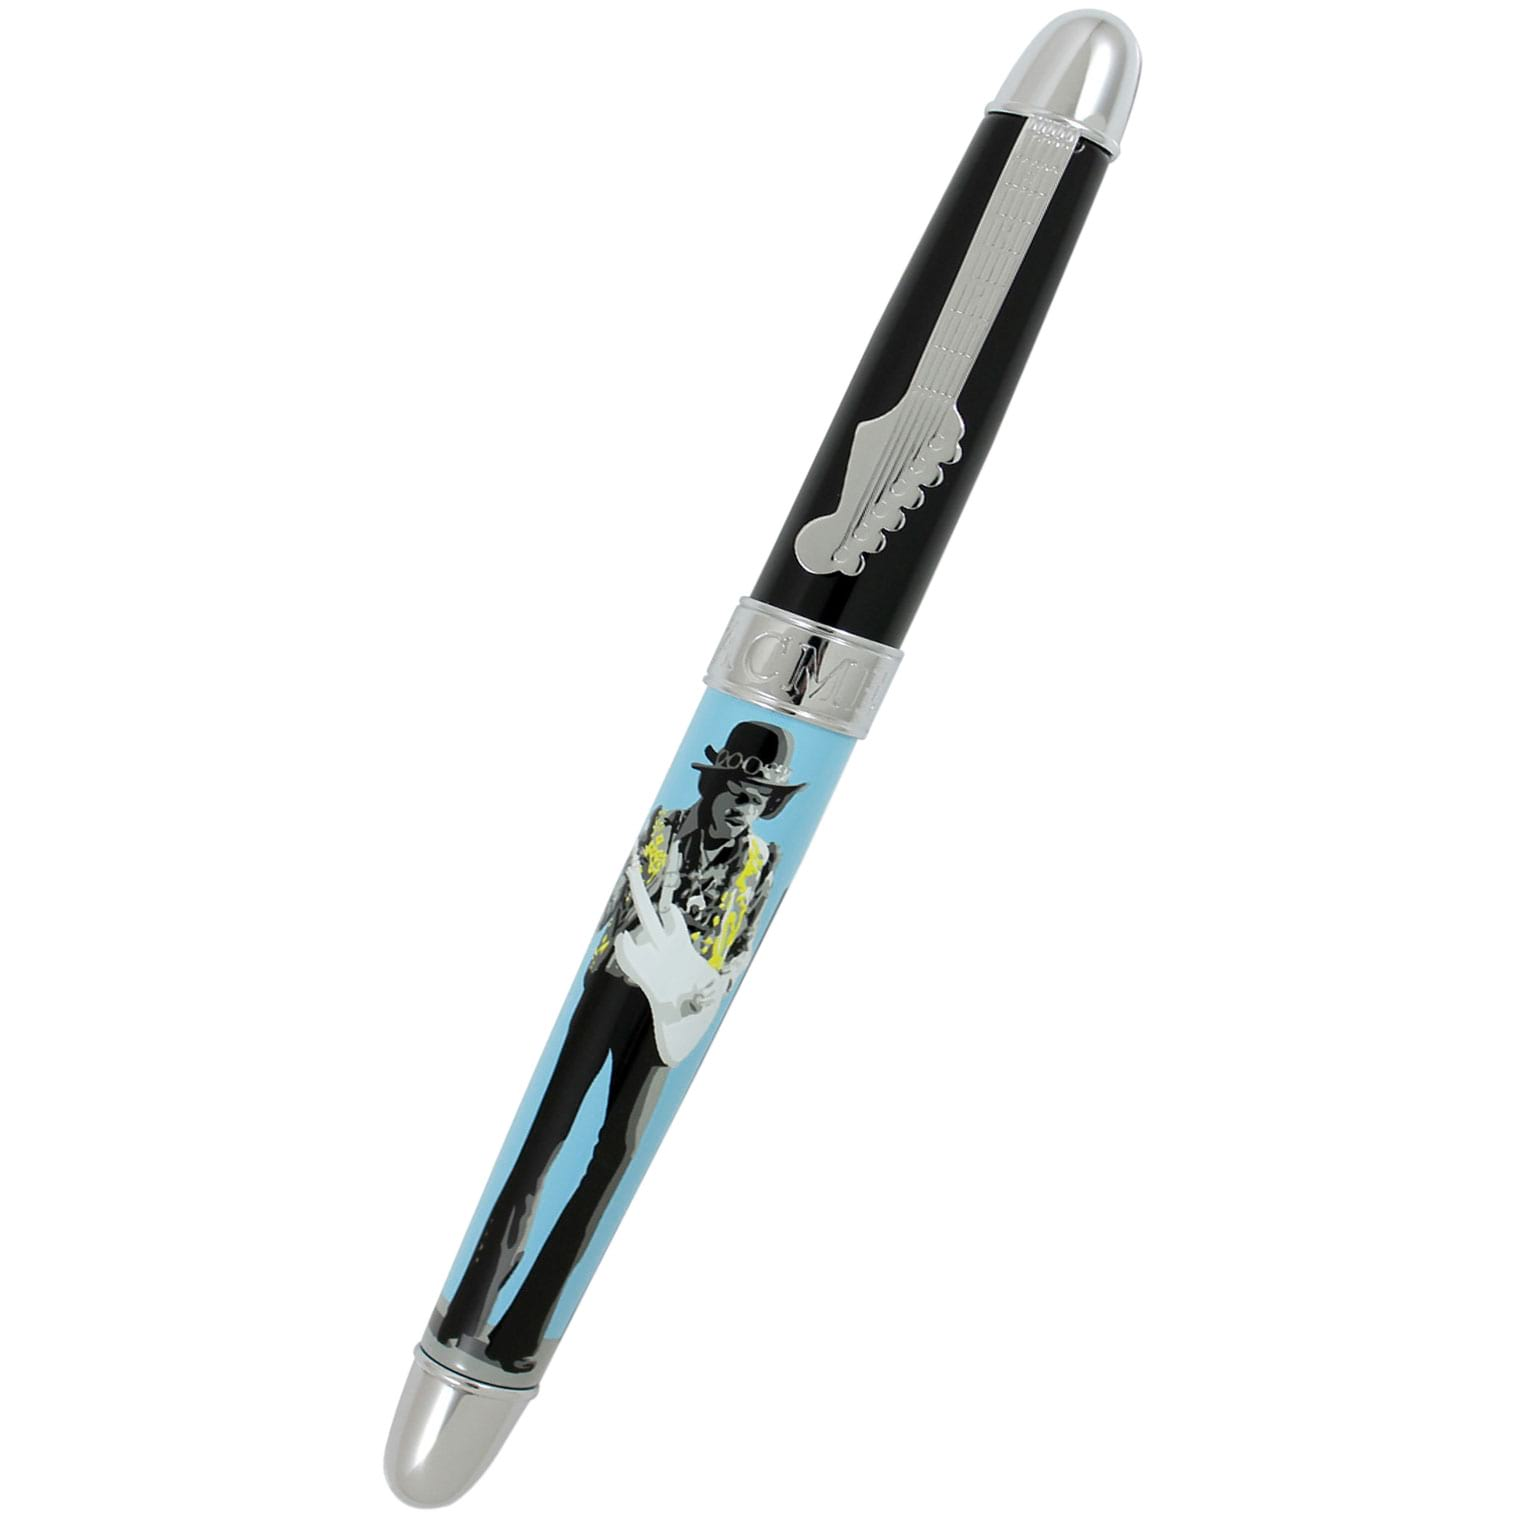 Acme Jimi Hendrix Limited Edition Rollerball Set